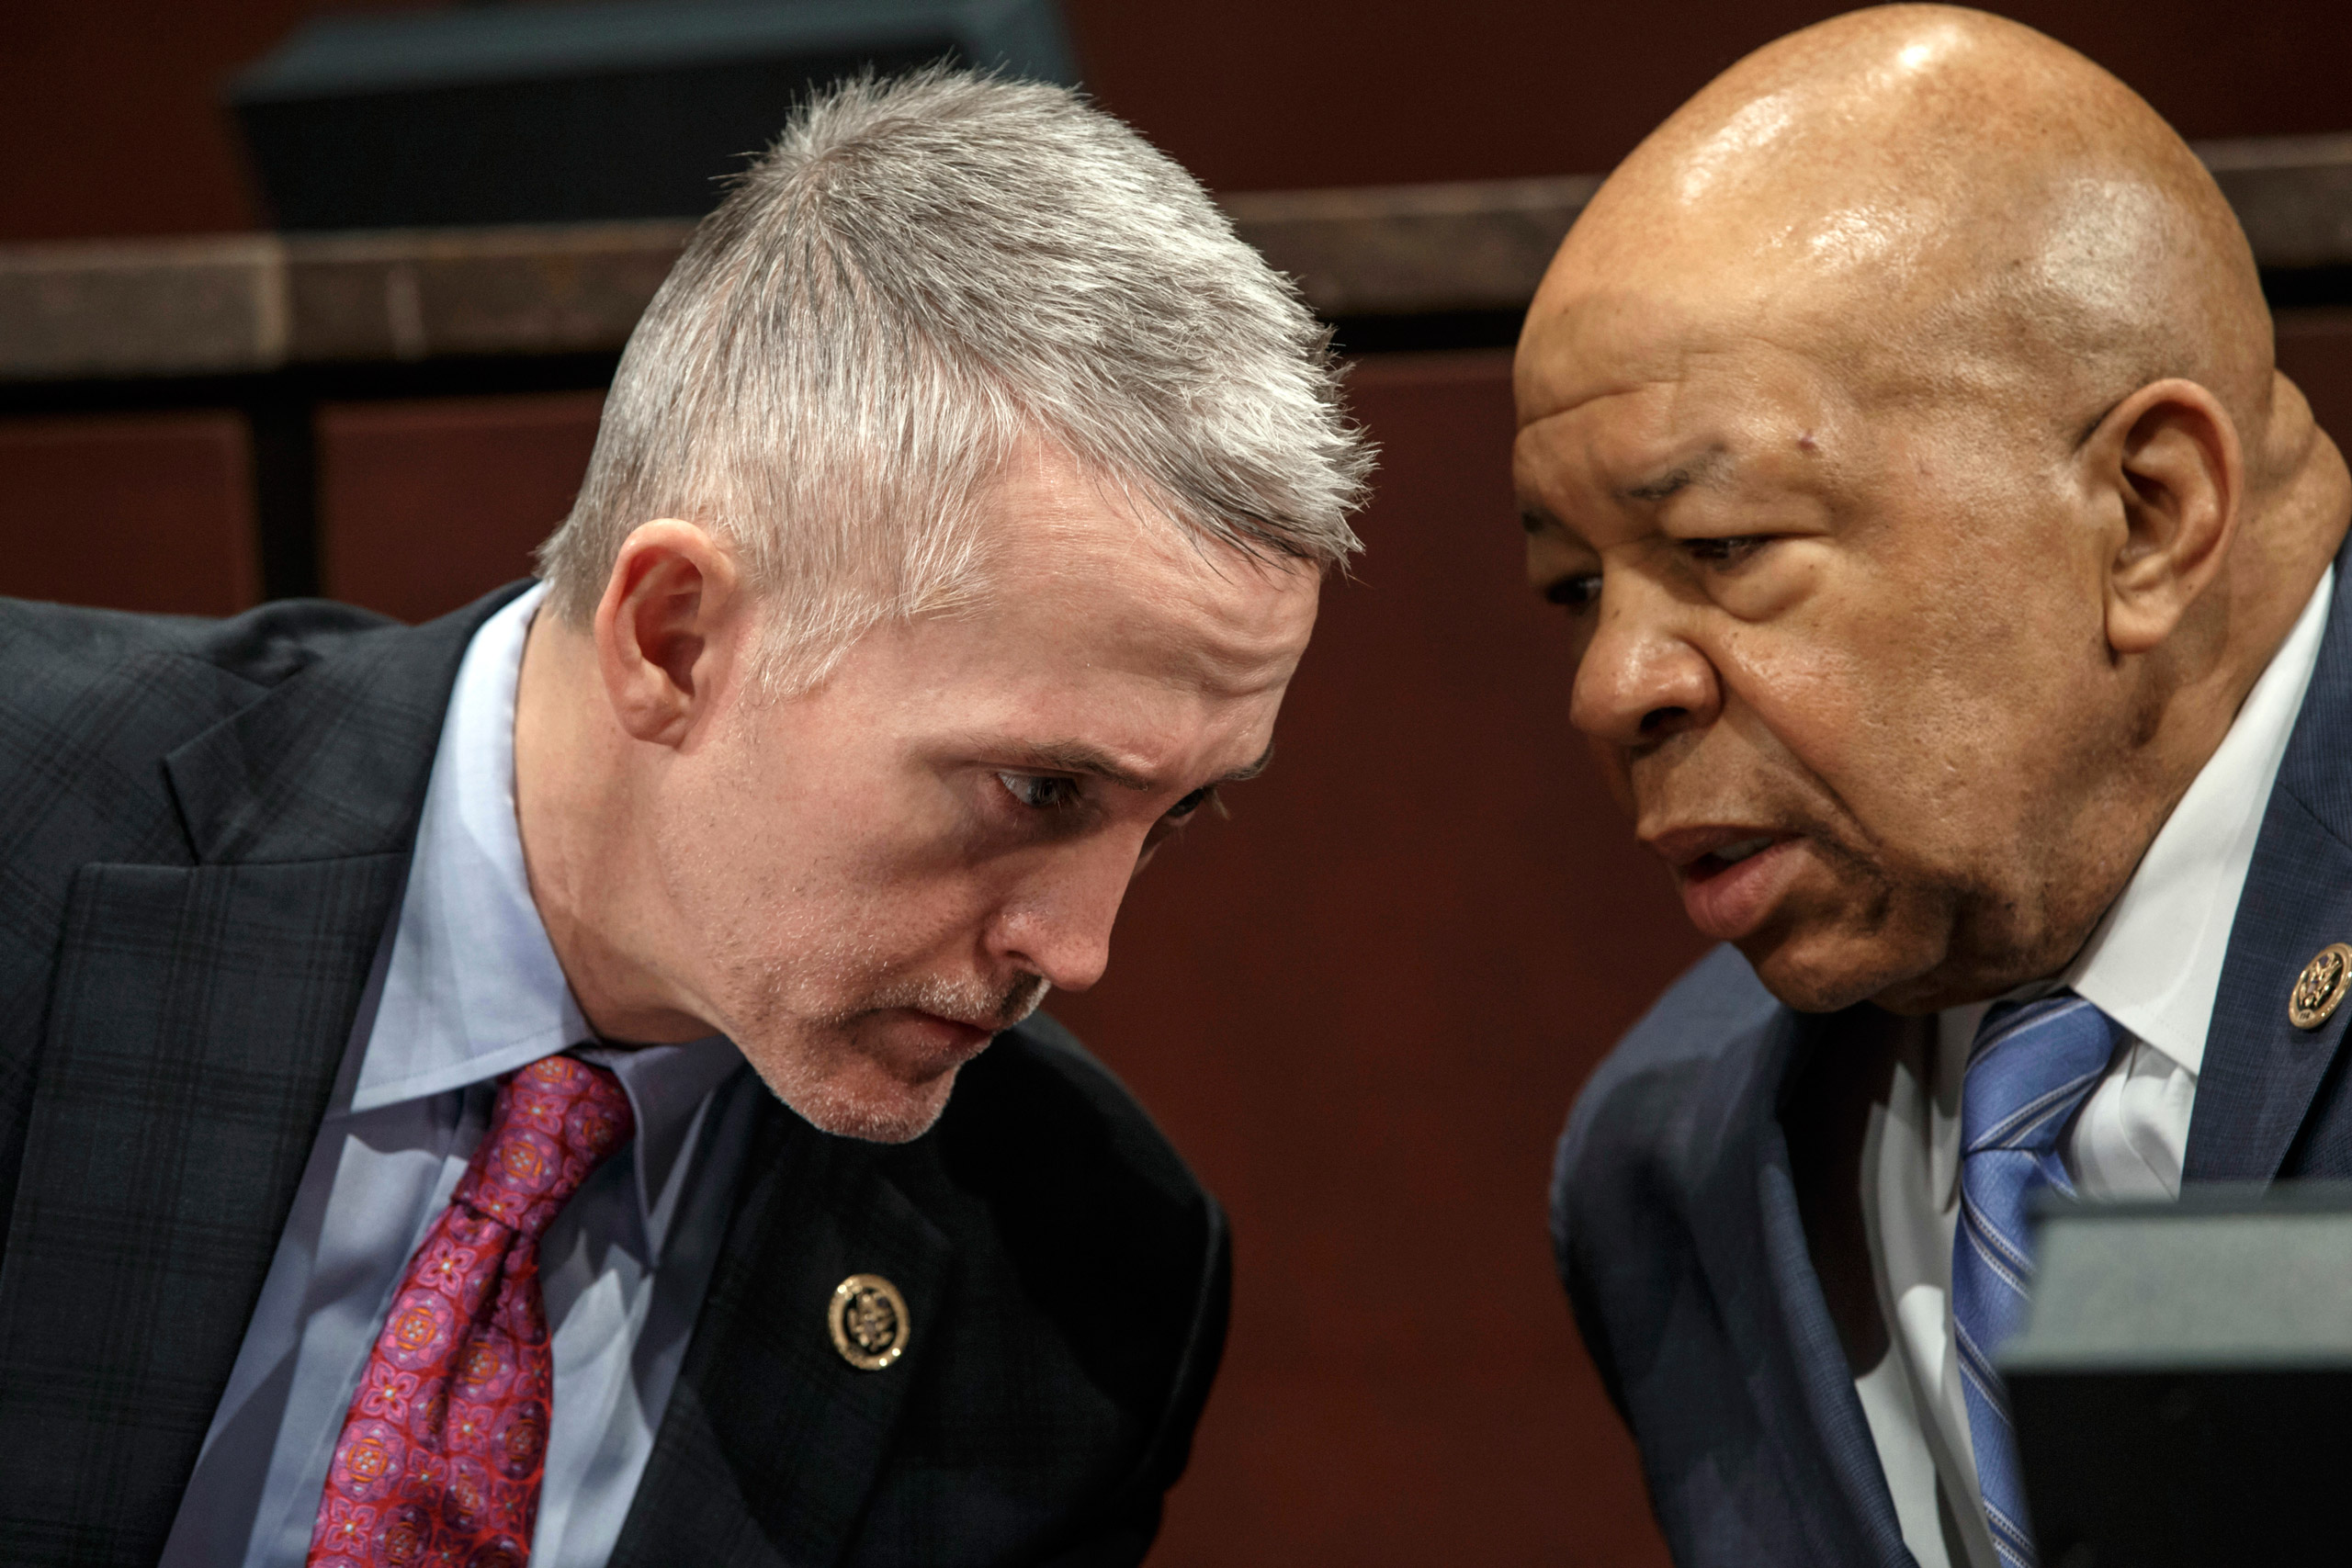 House Benghazi Committee Chairman Rep. Trey Gowdy, R-S.C., left, confers with the committee's ranking member Rep. Elijah Cummings, D-Md., during the committee's hearing on Capitol Hill in Washington. on Jan. 27, 2015.